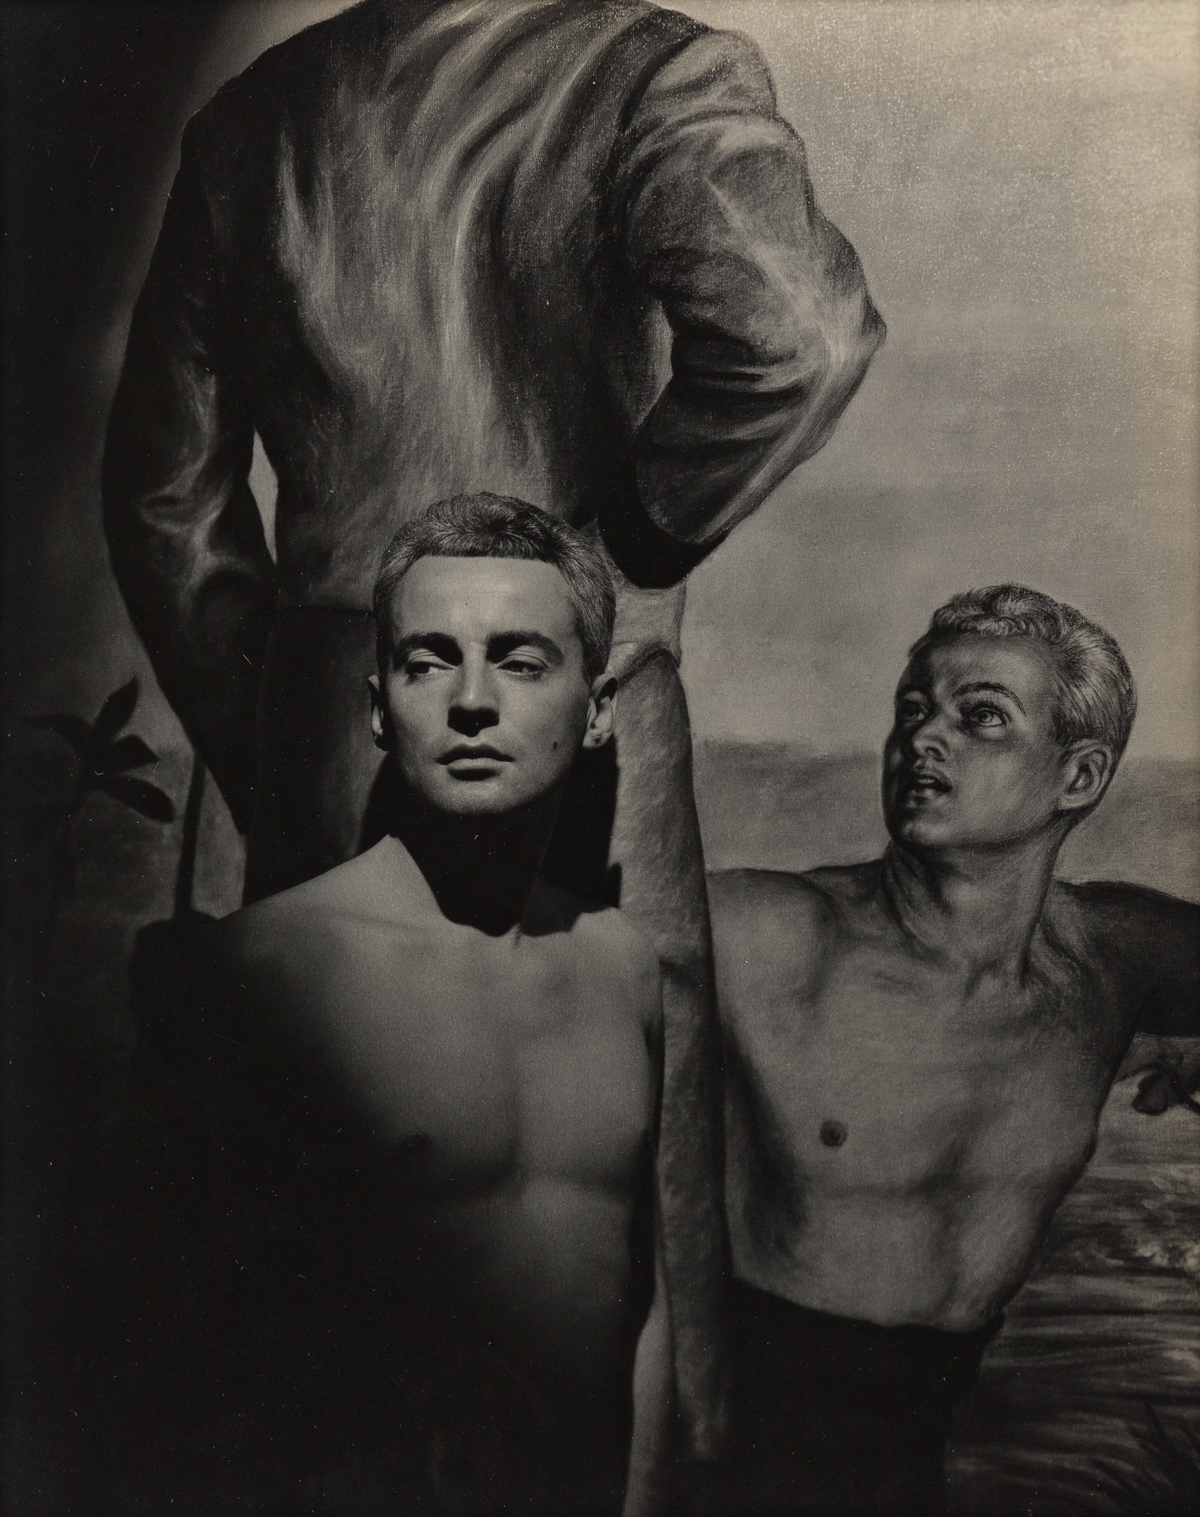 GEORGE PLATT LYNES (1907-1955) Self Portrait in front of Jared Frenchs mural Cavalrymen Crossing a River.